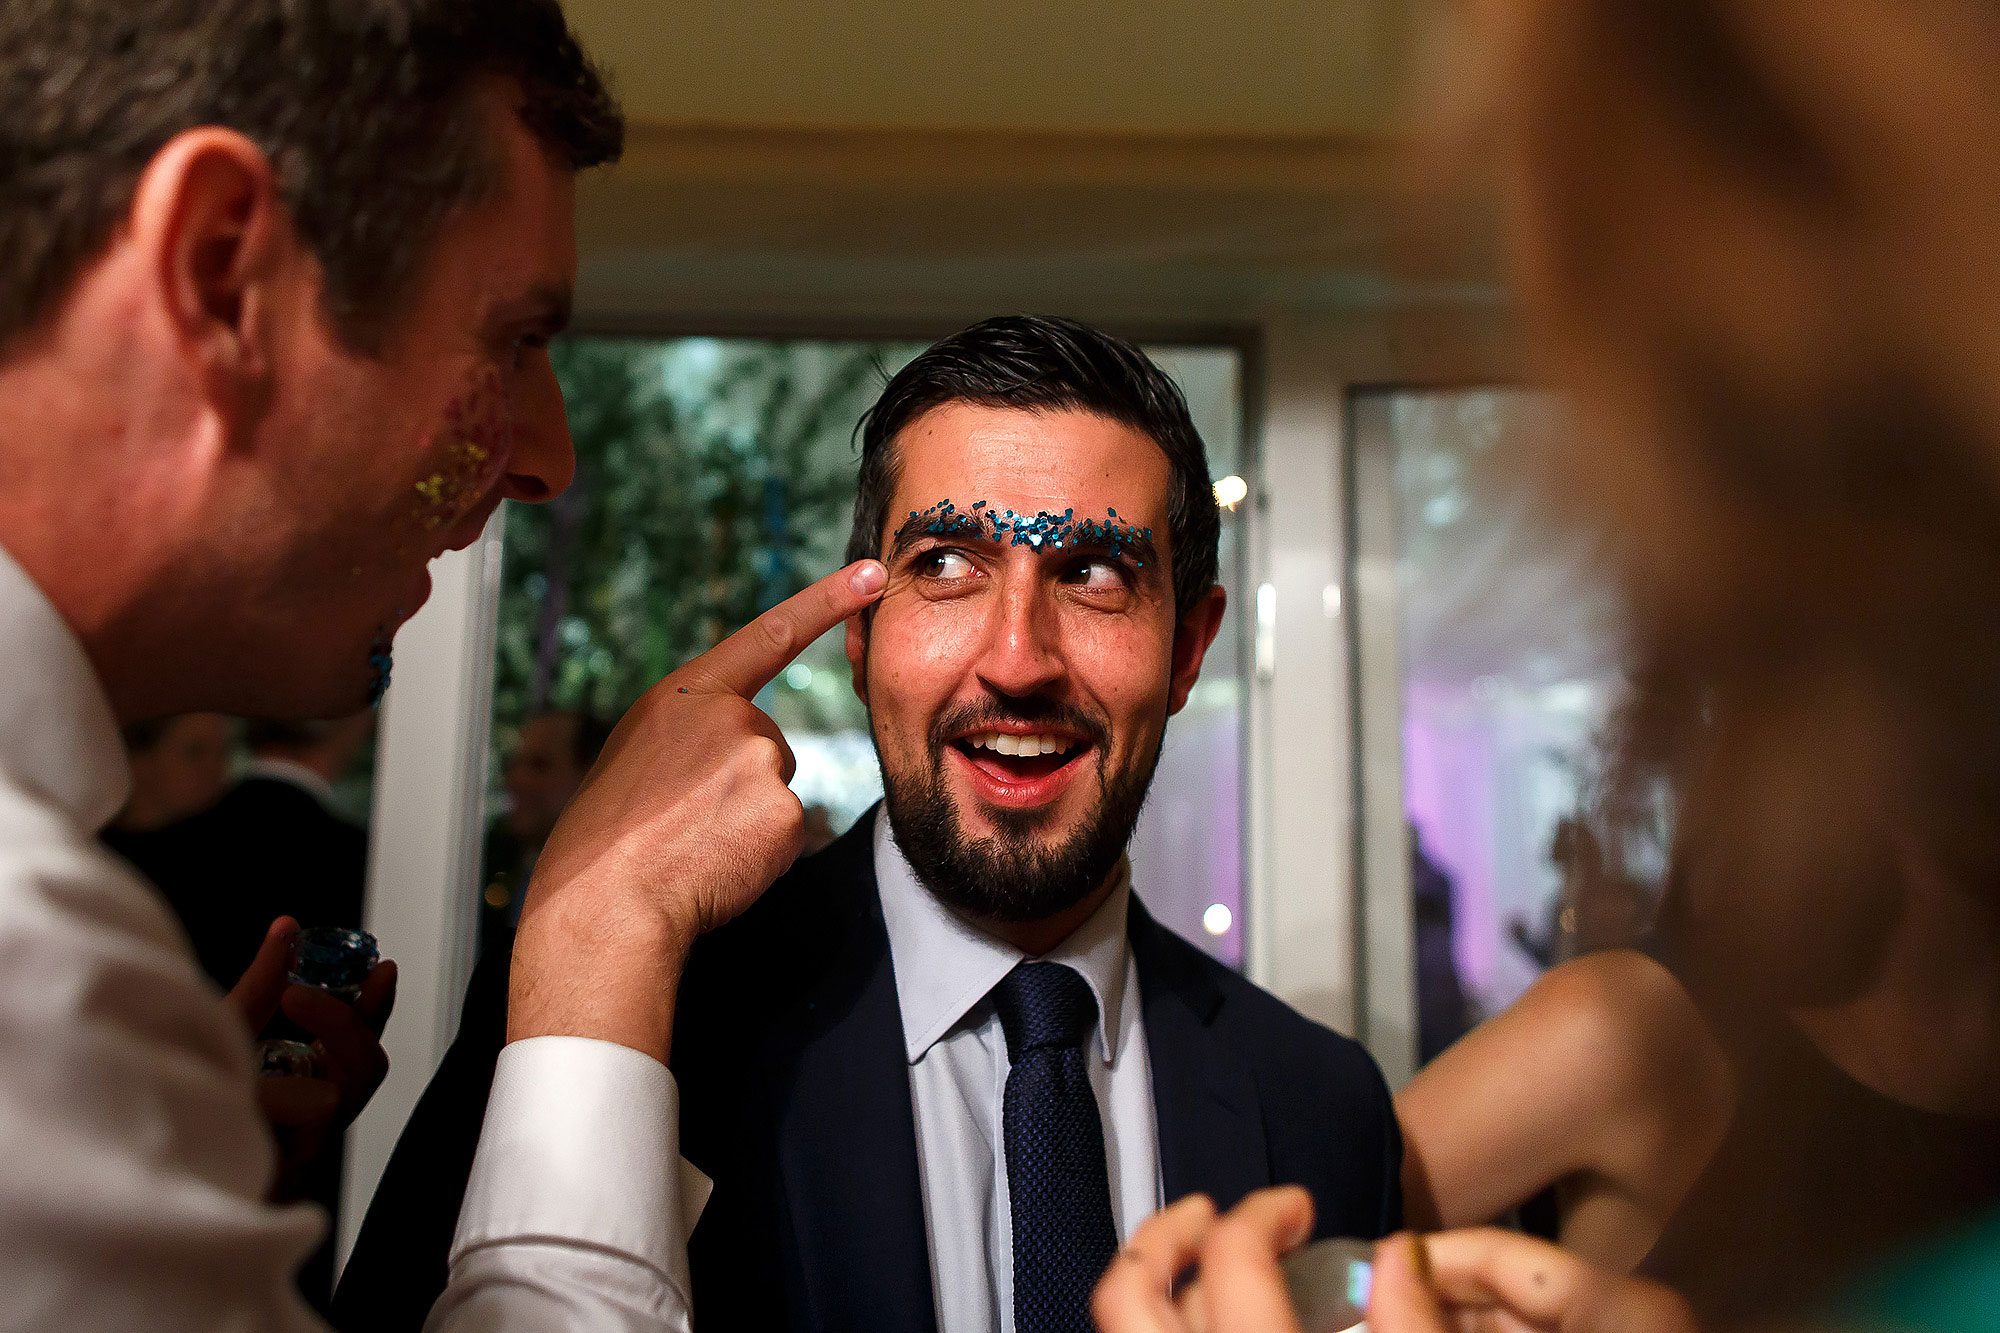 Wedding guests applying glitter paint to eyebrows during wedding reception | Lake District Wedding by Toni Darcy Photography